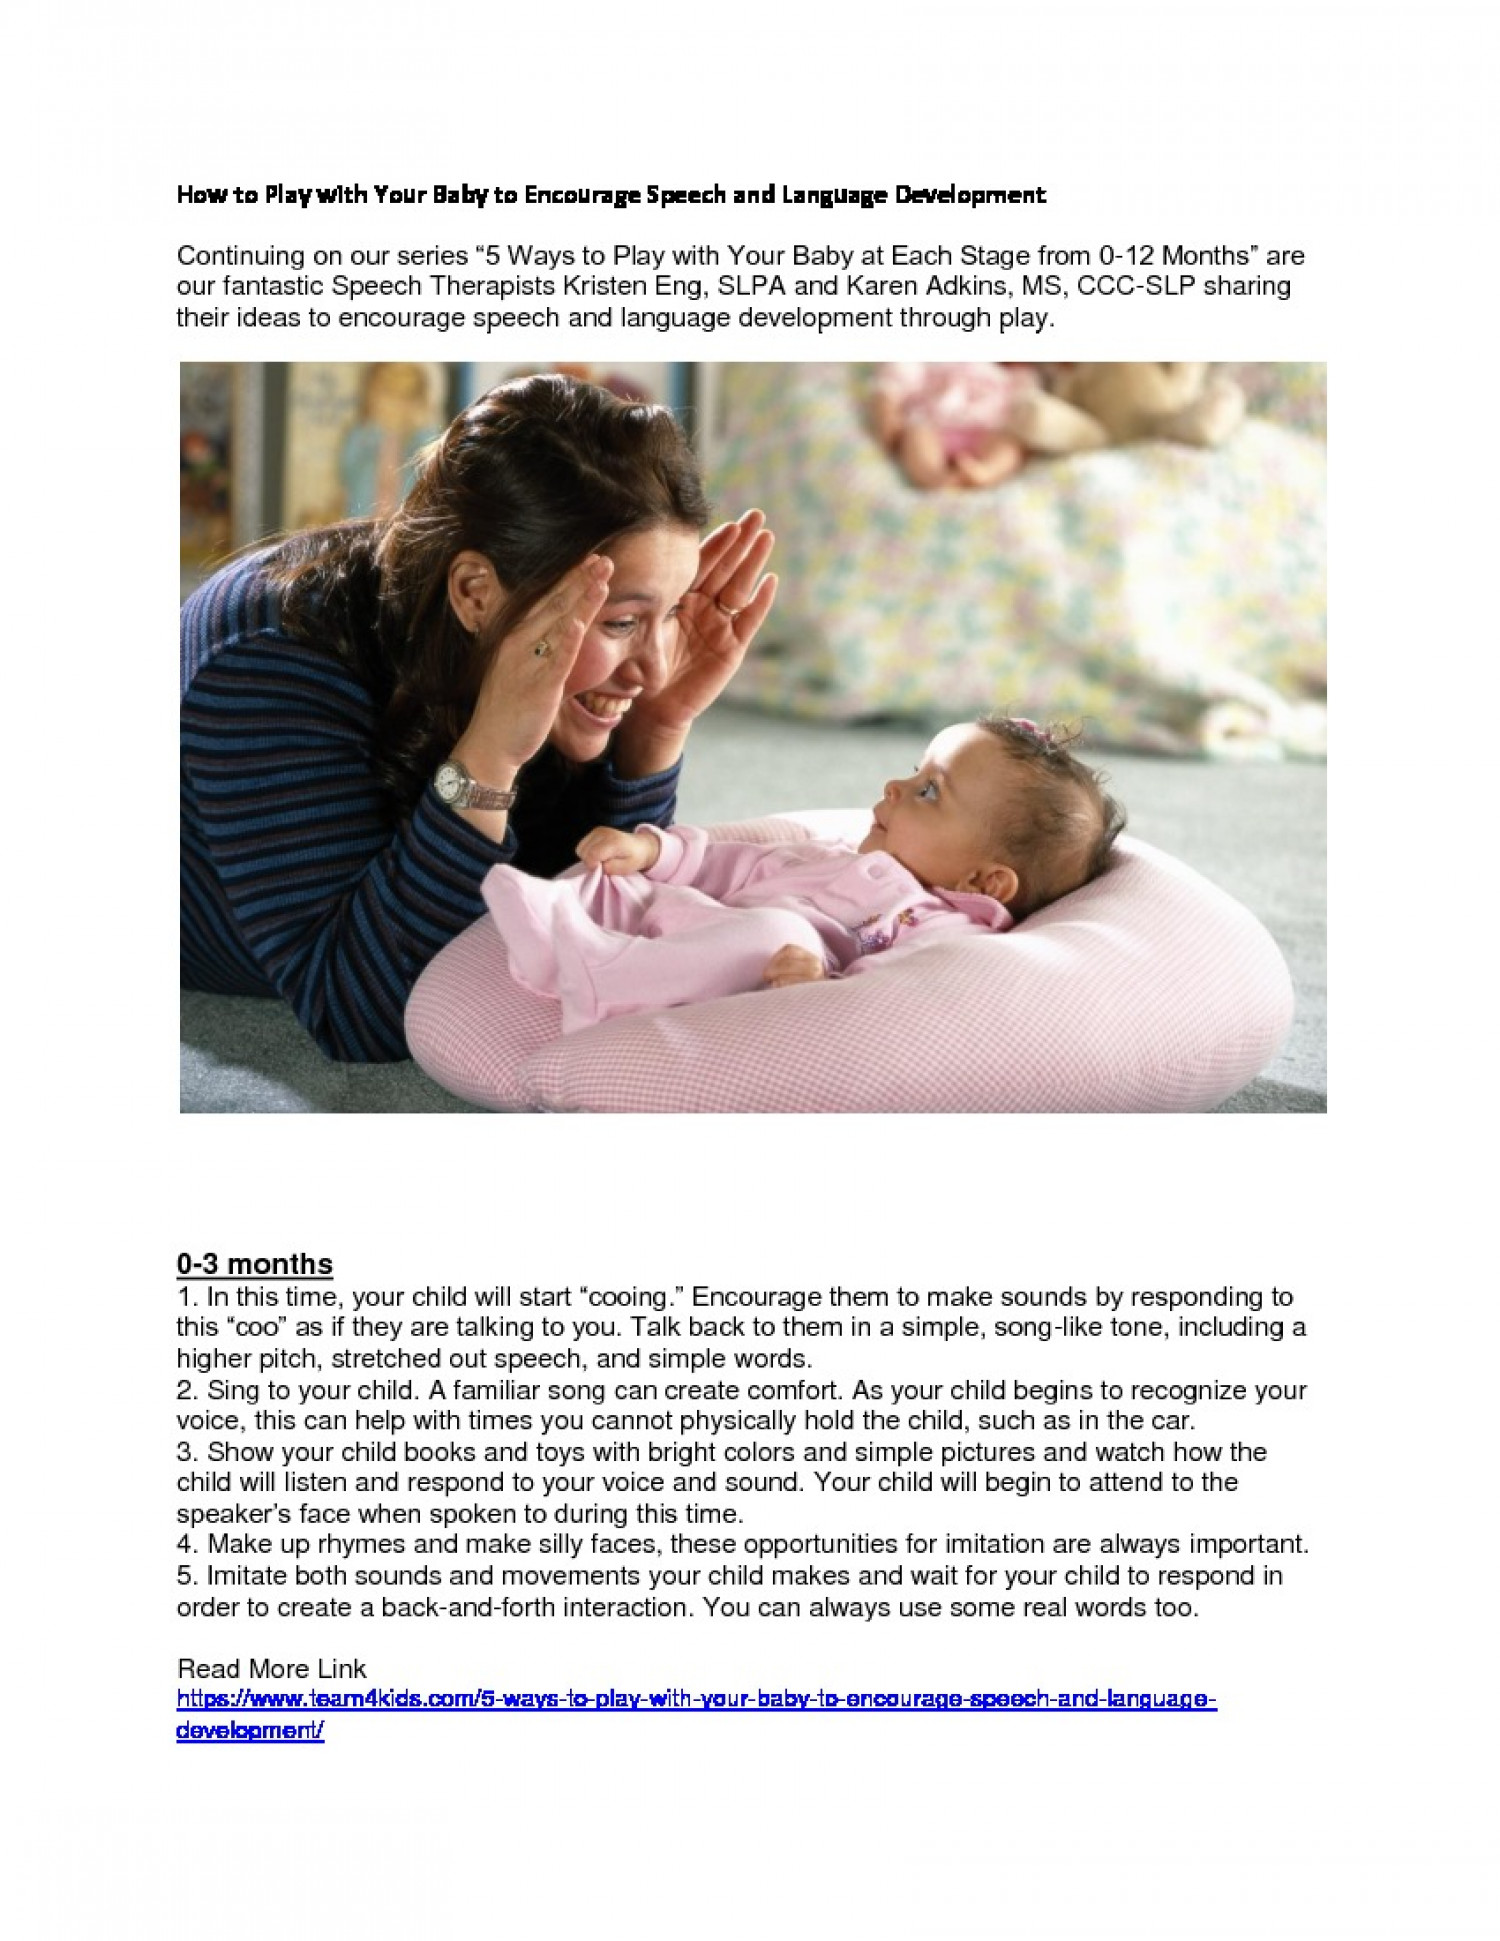 How to Play with Your Baby To Encourage Speech and Language Development Infographic